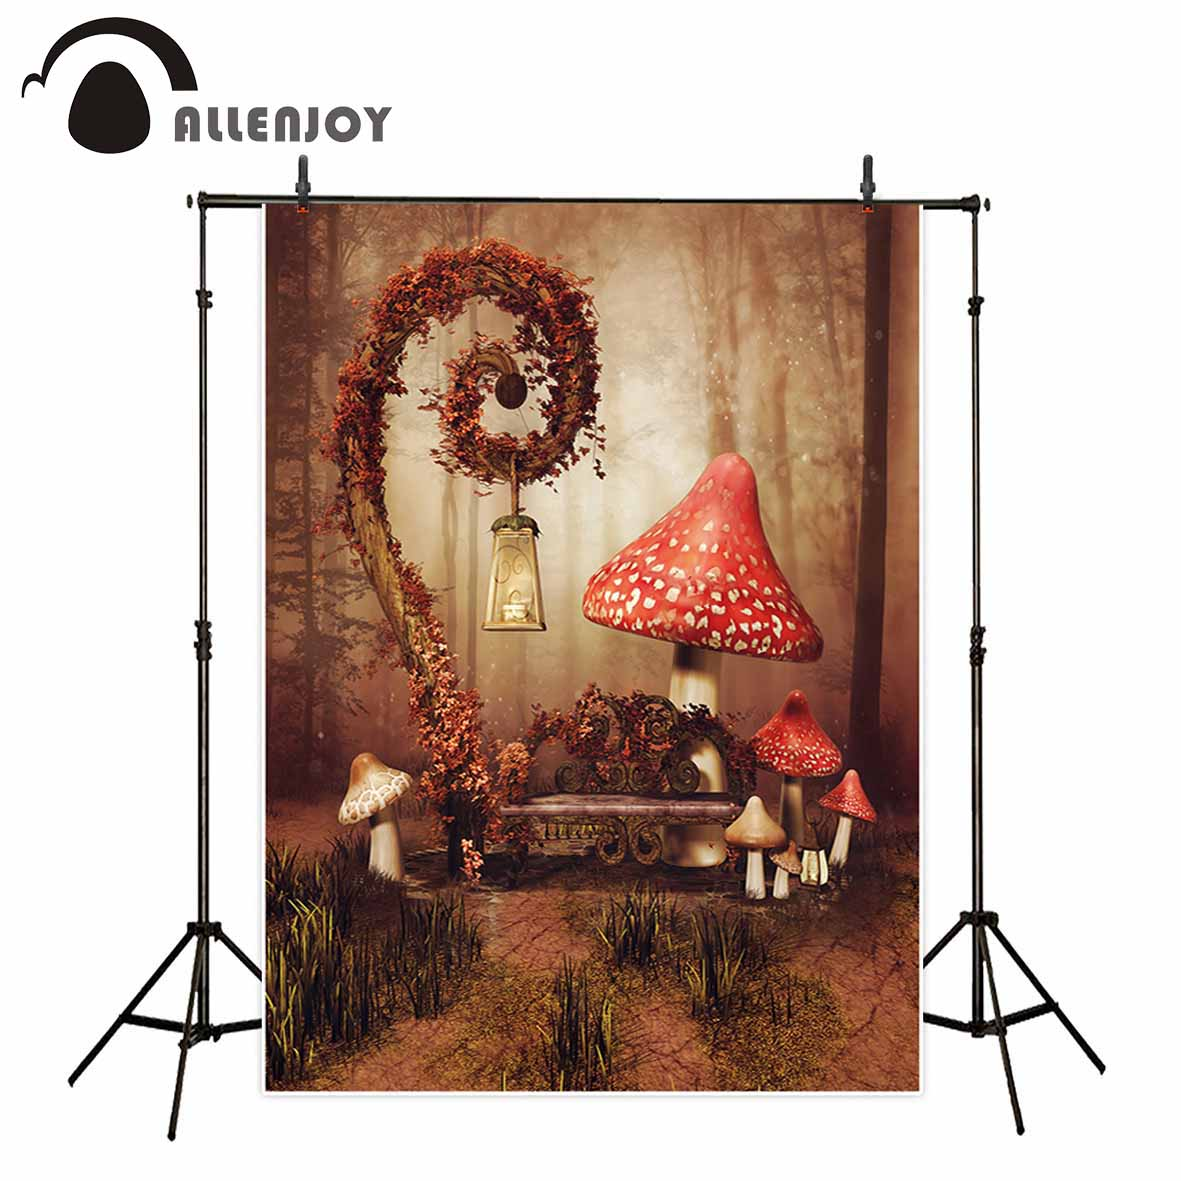 Allenjoy Children mushroom Wonderland autumn forest photography backdrops lawn vine scenic baby photographic backgrounds photo